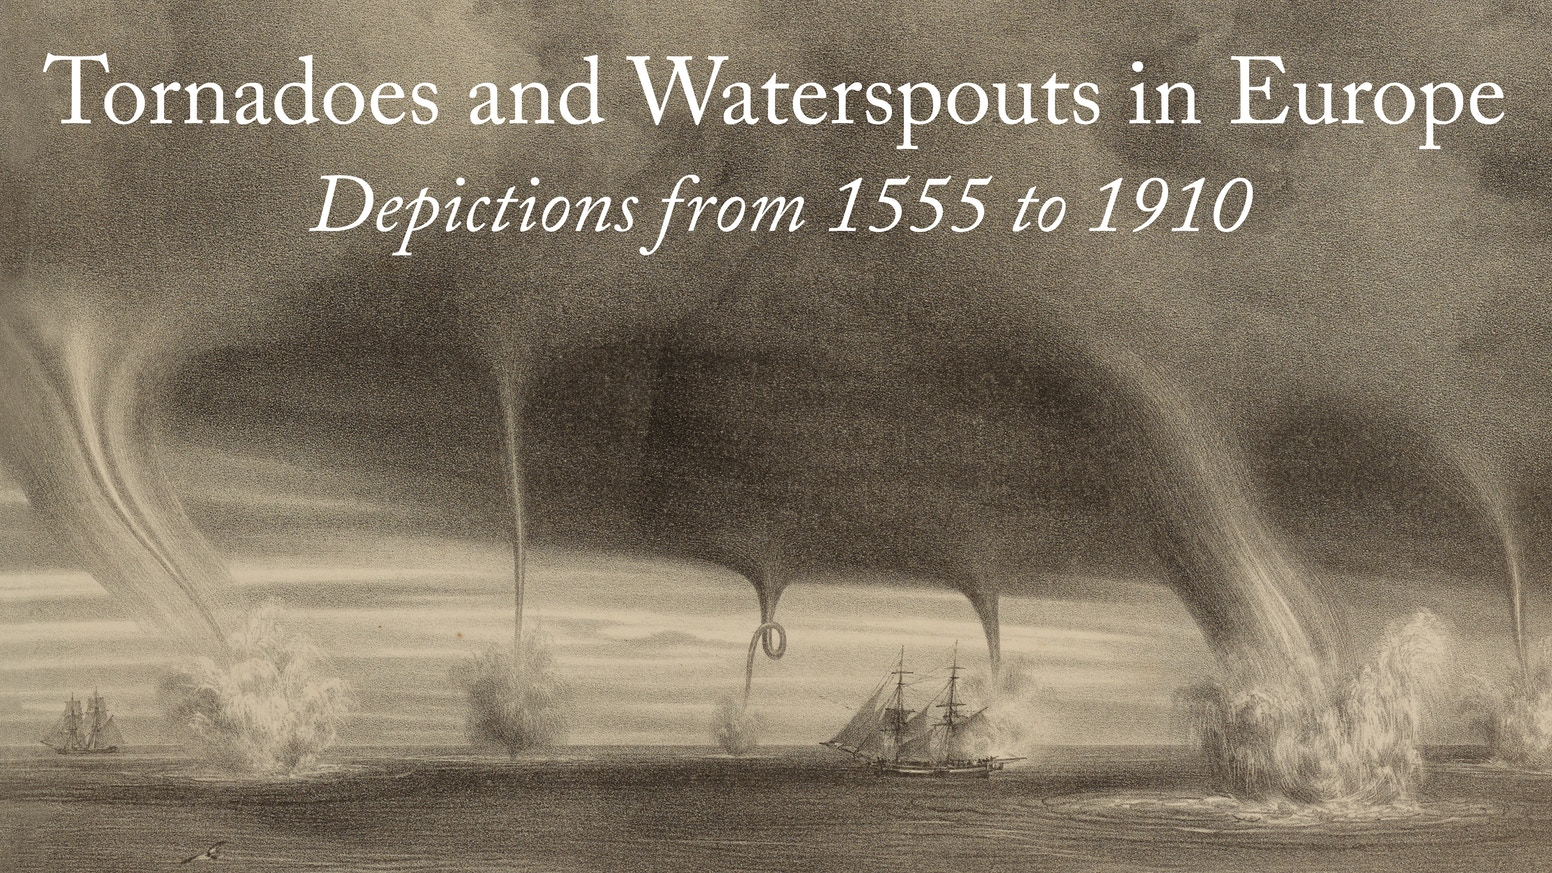 Tornadoes And Waterspouts In Europe A Coffee Table Book